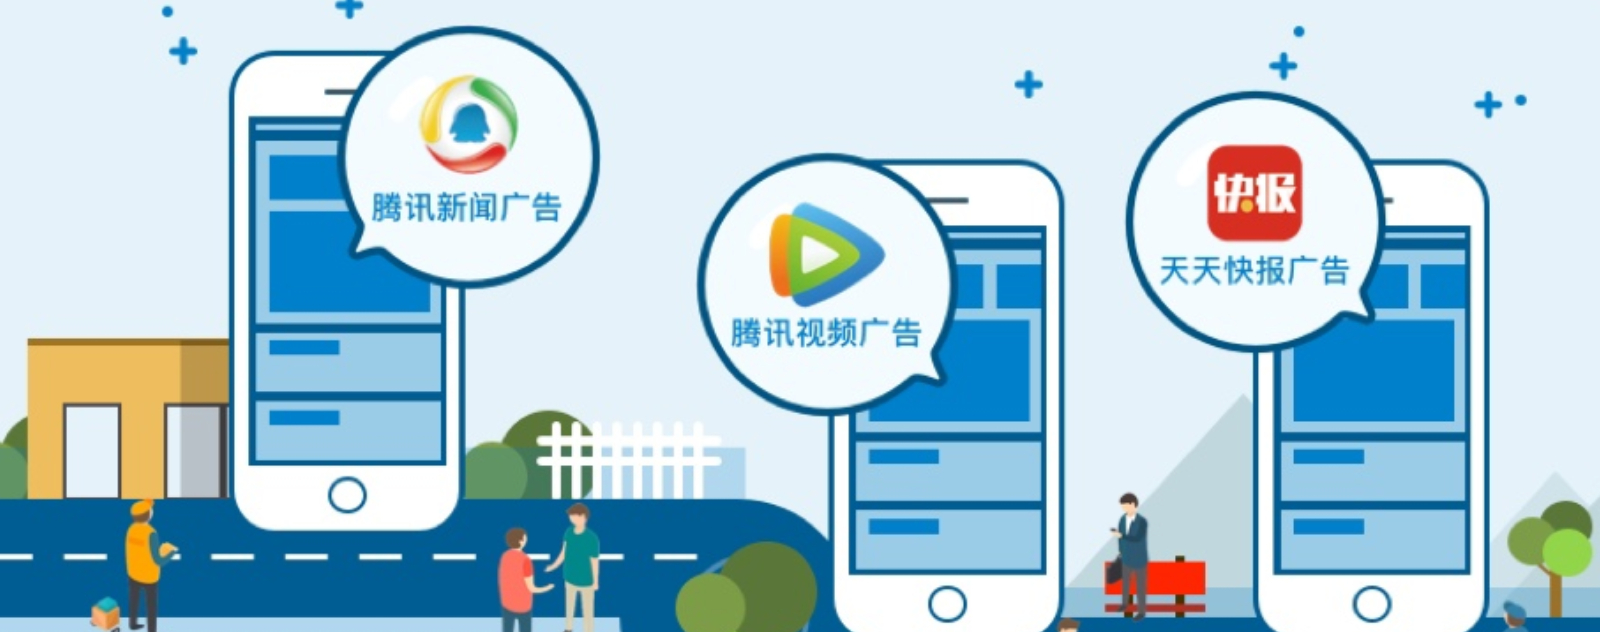 App listed in Tencent Social Platform